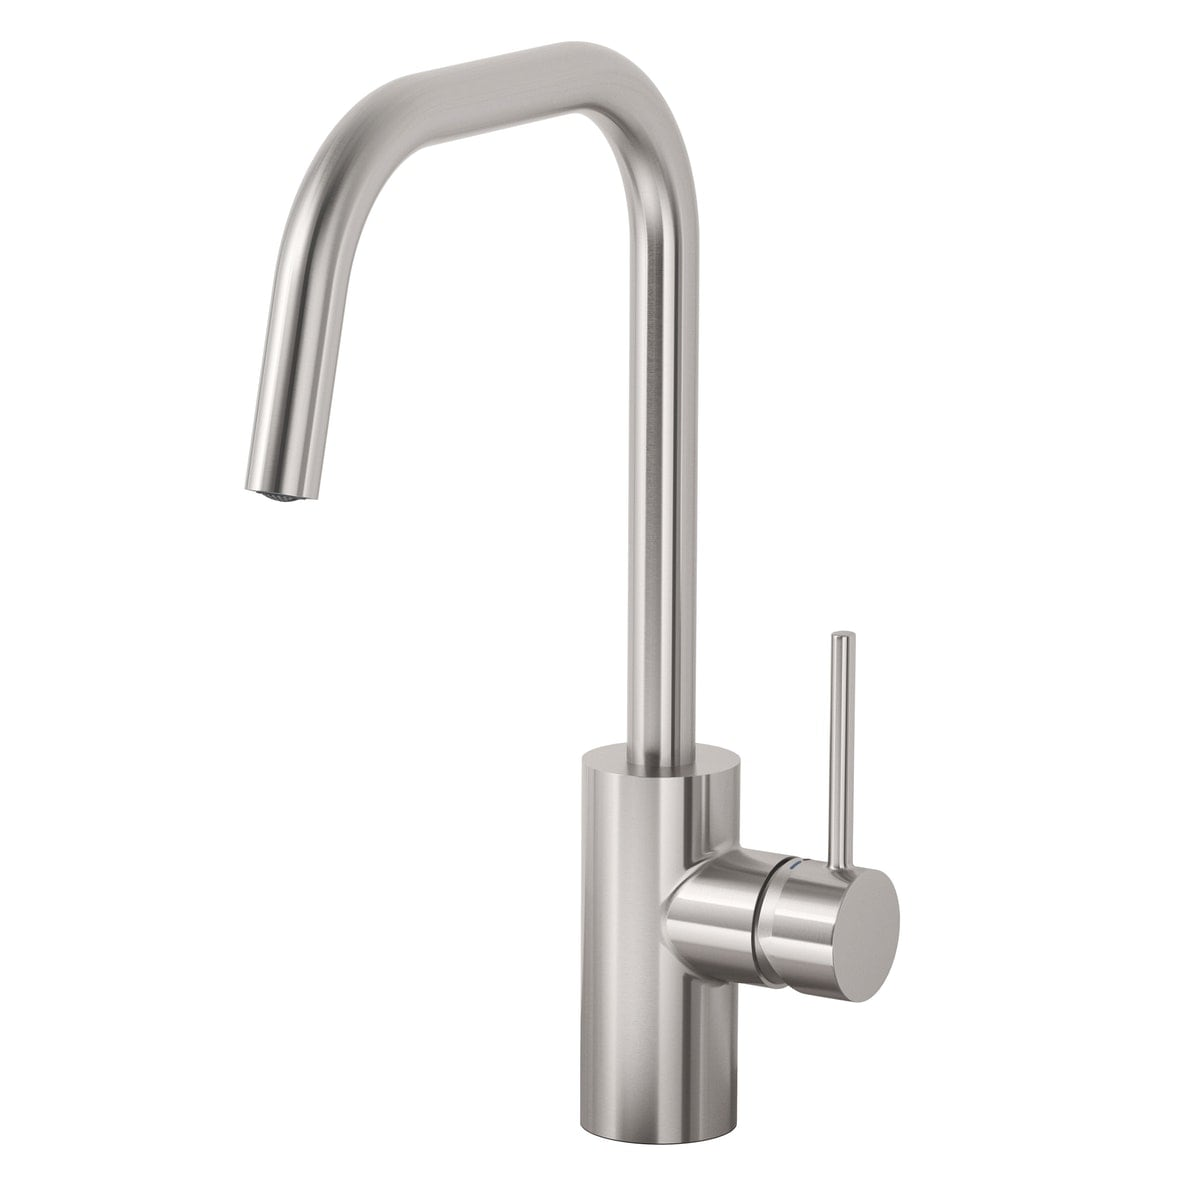 METOD Kitchen taps & sinks ÄLMAREN/エルマーレン